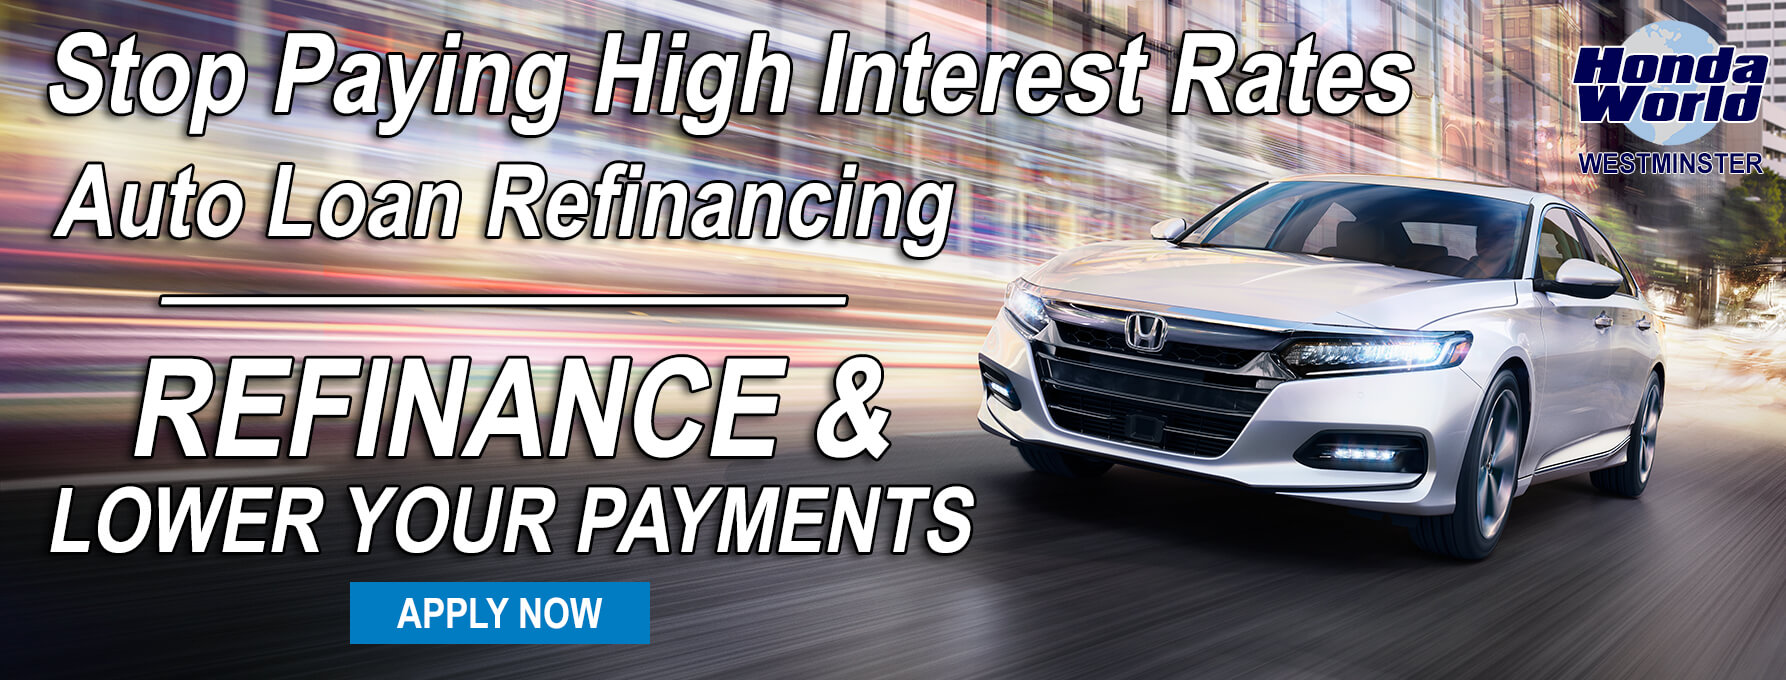 Auto Loan Refinancing Orange County Honda World Westminster